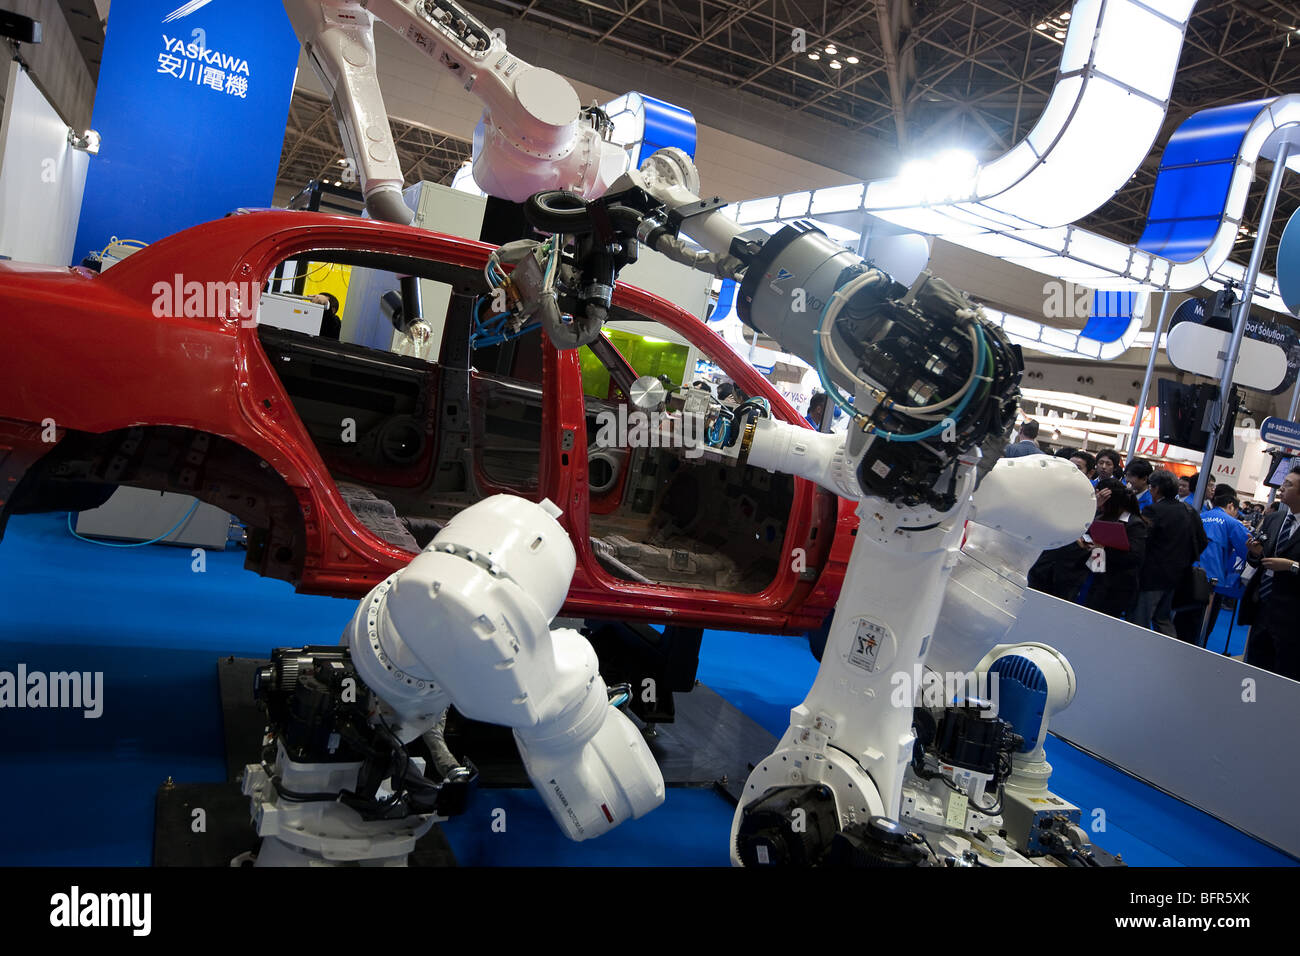 Yaskawa robots for car industry on show at robot fair exhibition, Tokyo, Japan. Stock Photo